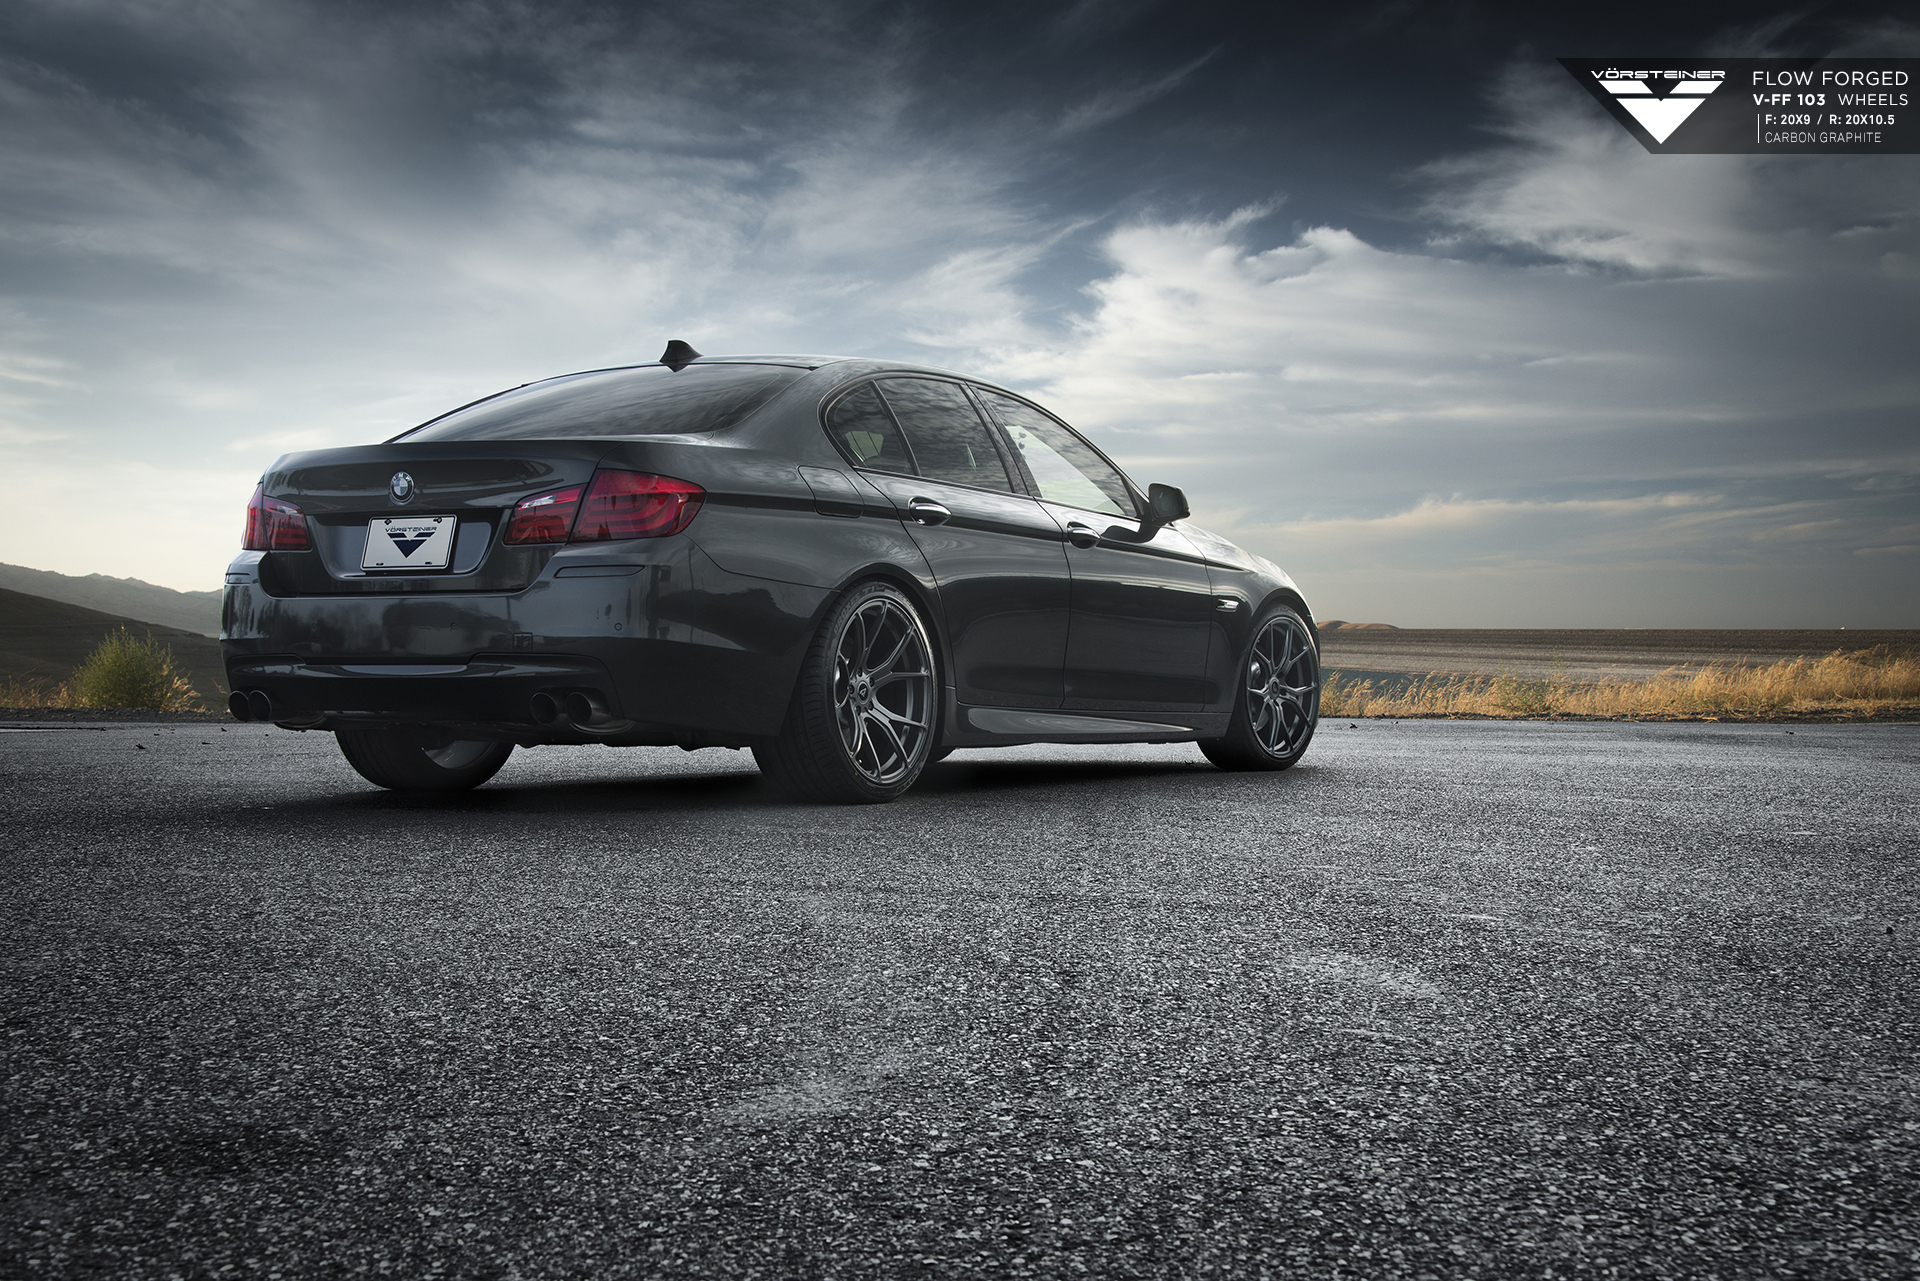 BMW F10 5 Series On Vorsteiner FlowForged Wheels 4